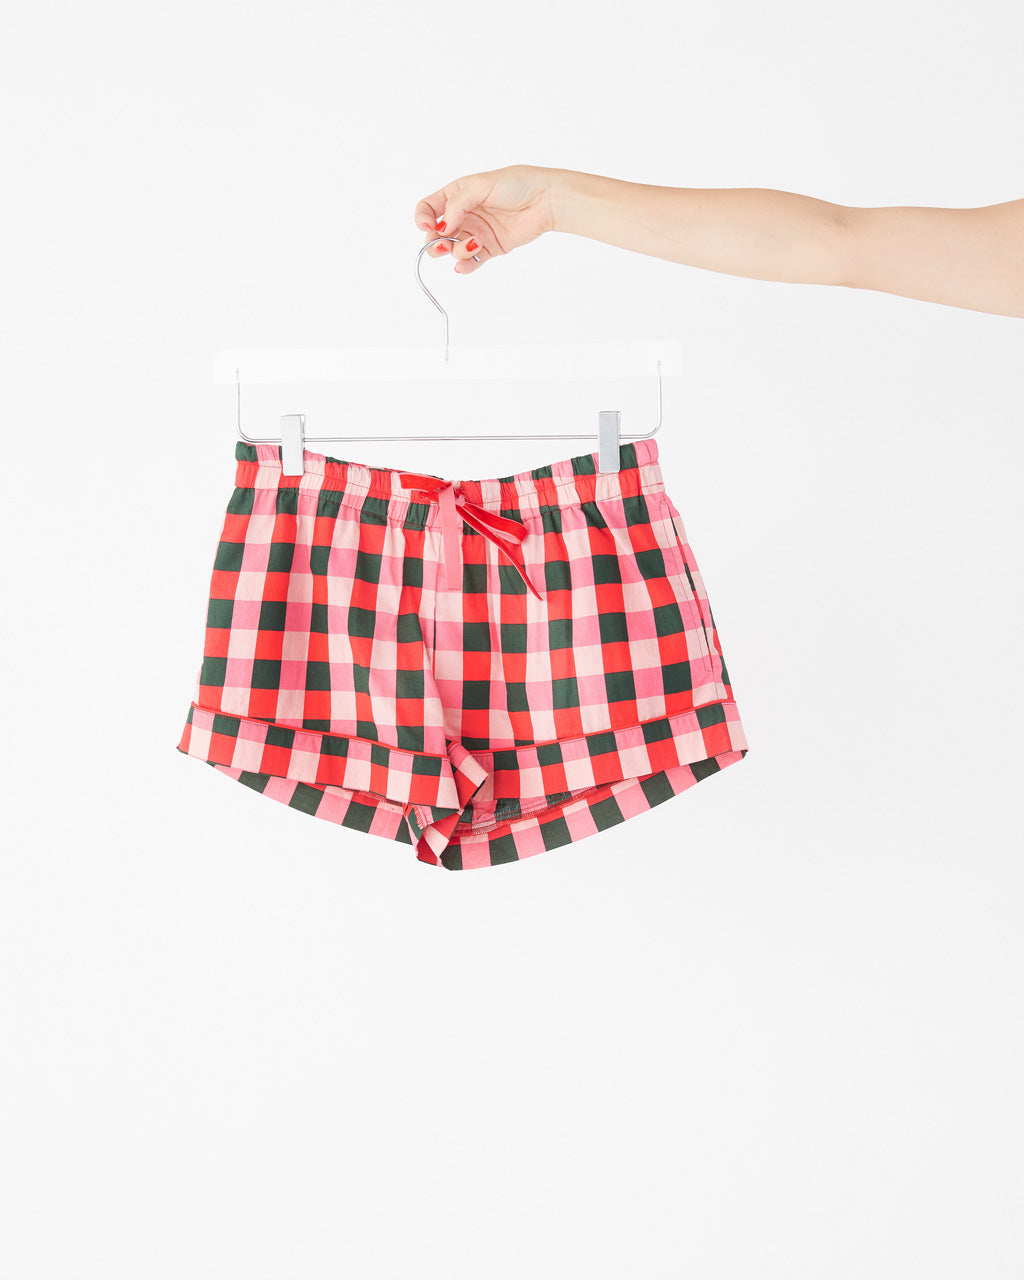 Leisure shorts in pink and green buffalo plaid.